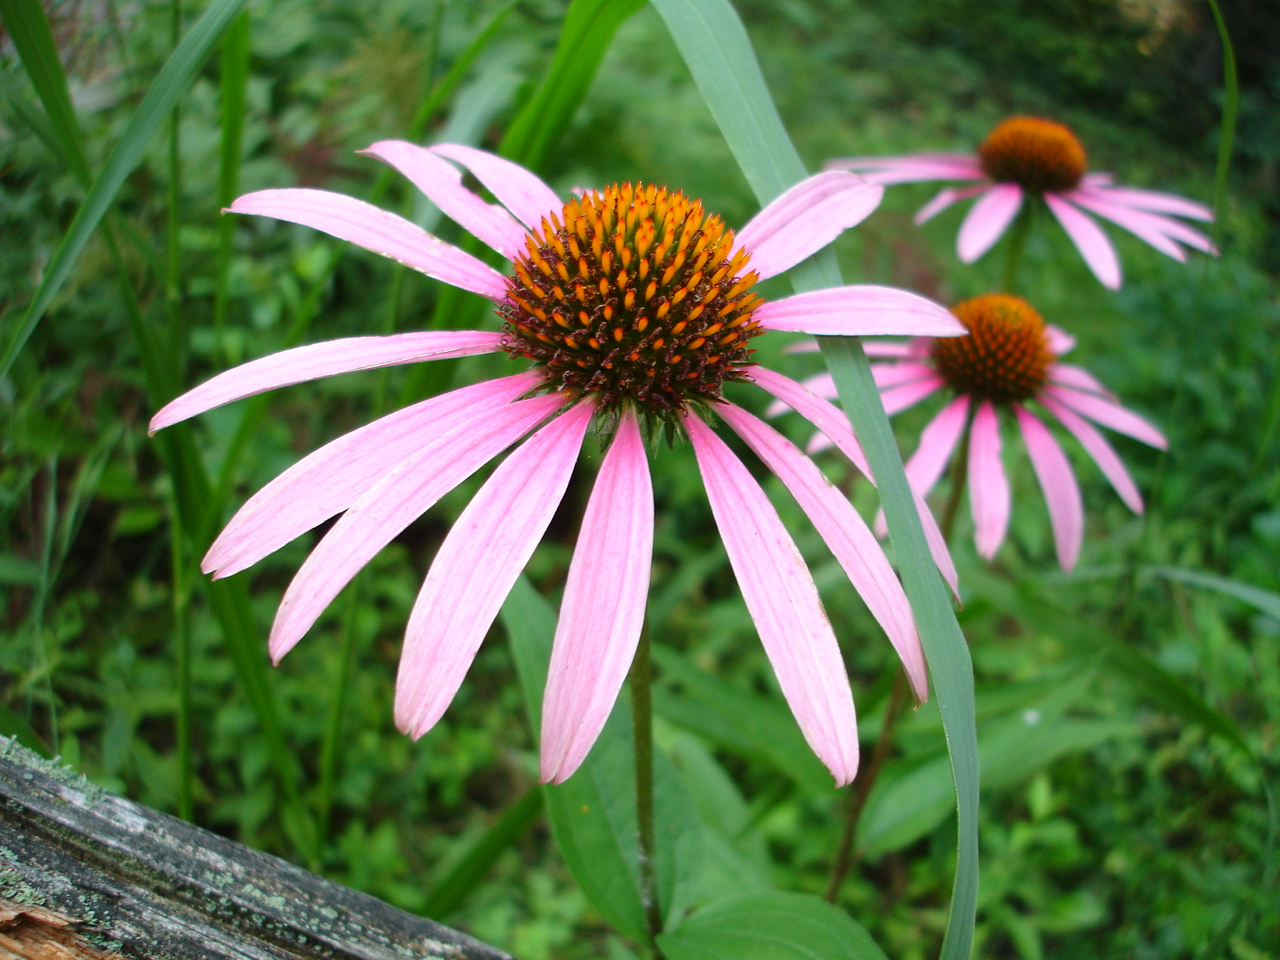 Purple Coneflowers at The White Rabbit Inn